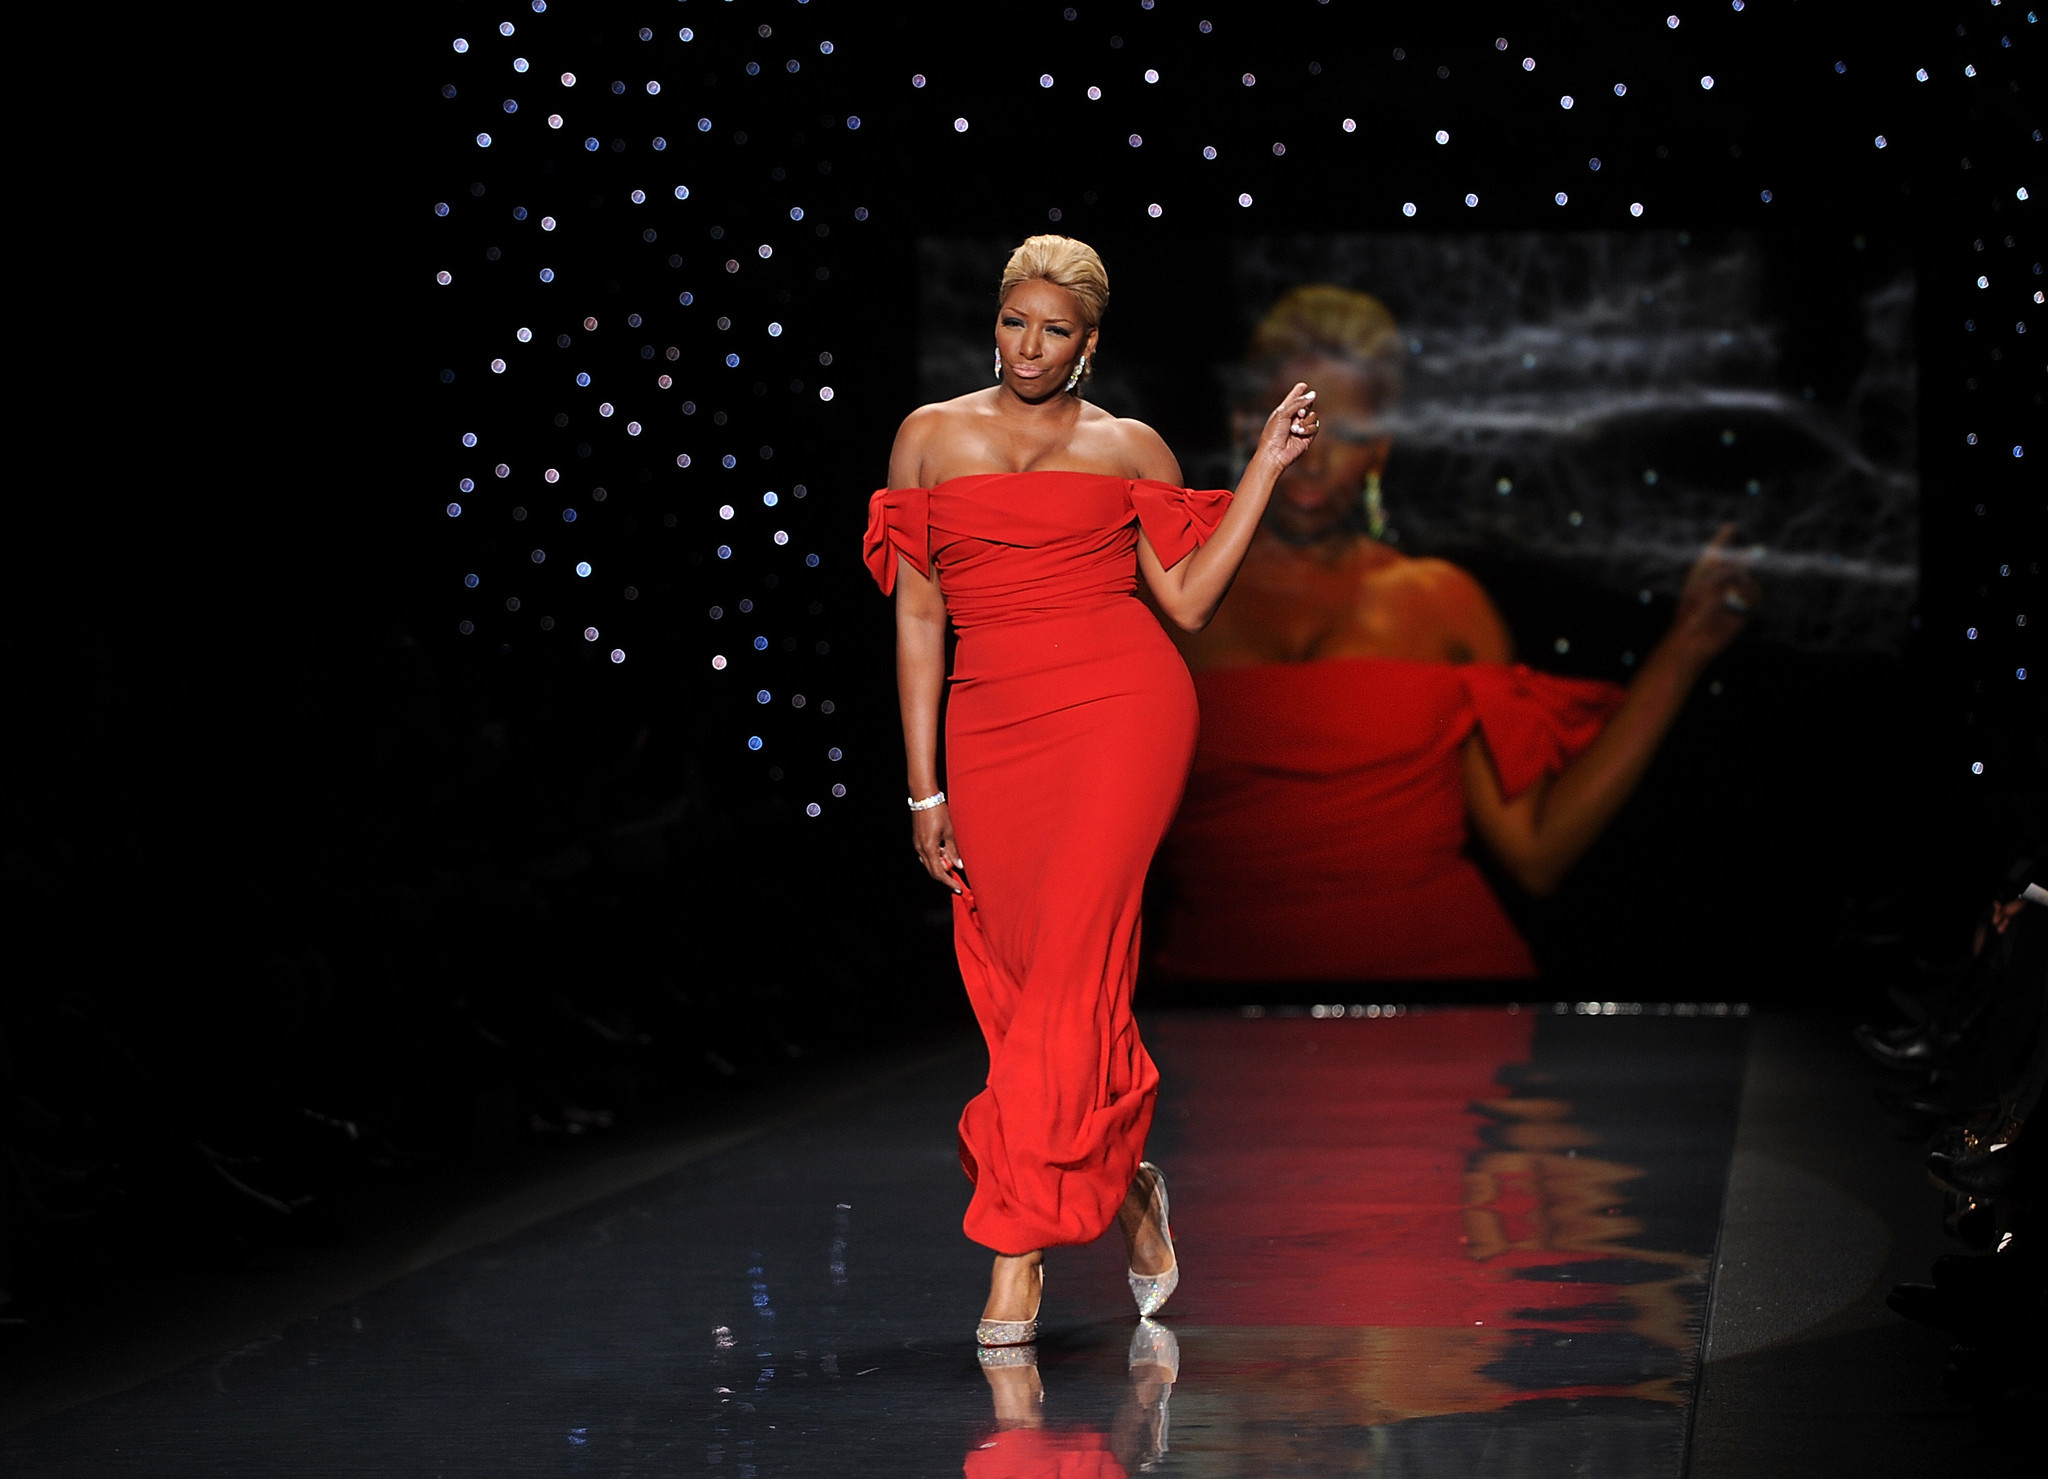 nene-leakes-fans-tell-her-she-needs-to-take-some-time-off-rhoa-because-shes-ruining-her-brand